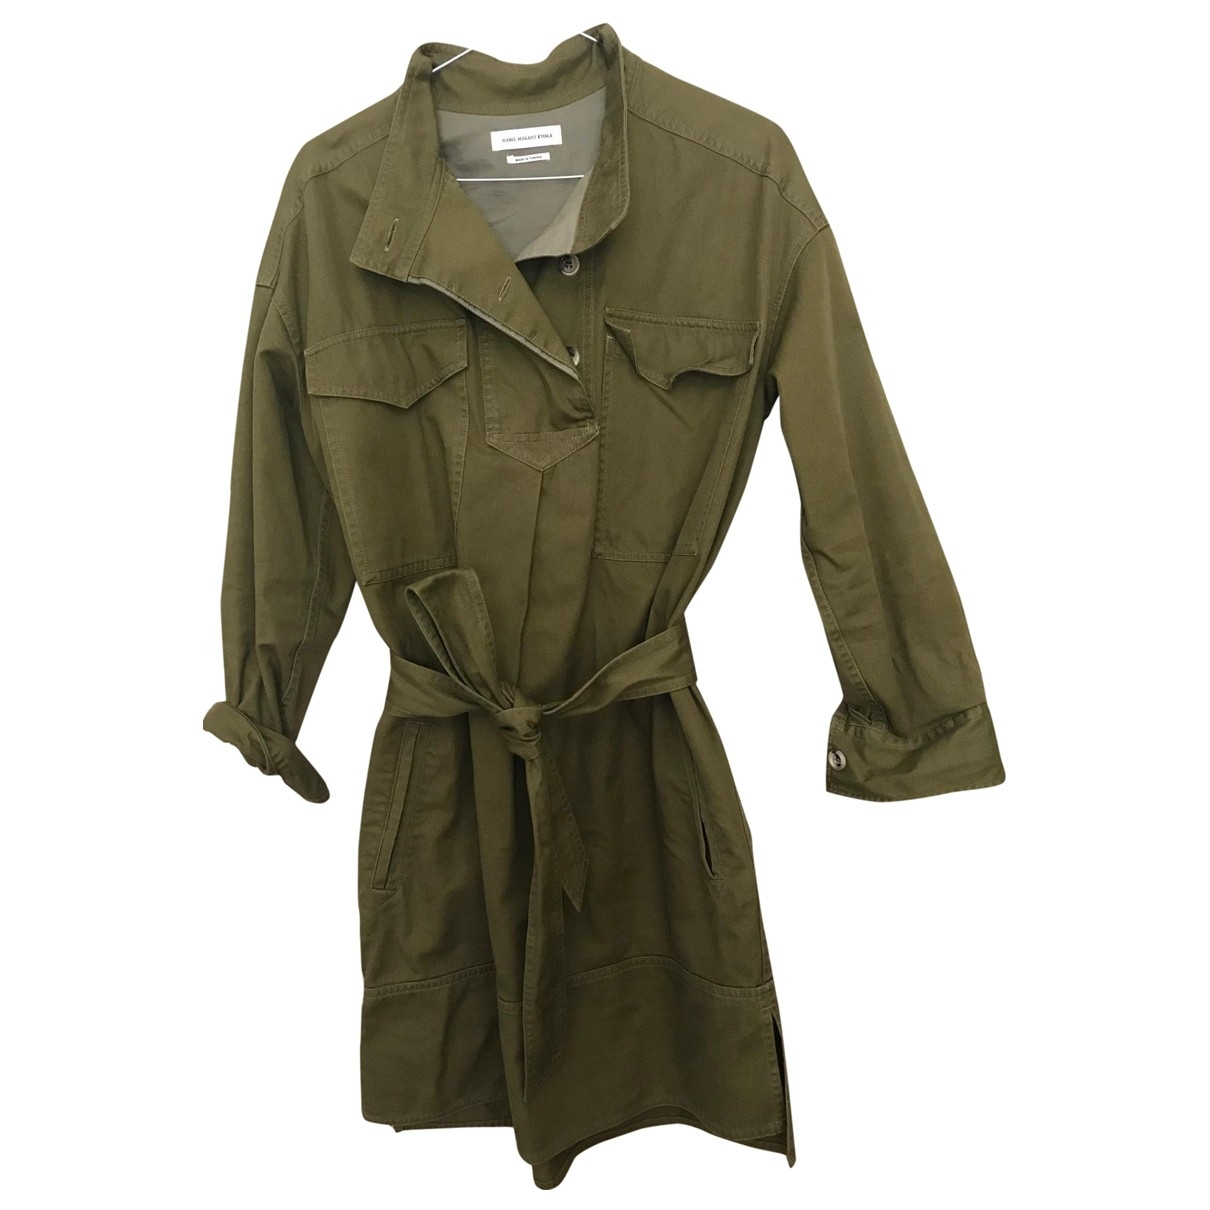 Isabel Marant Etoile \N Khaki Cotton dress for Women 38 FR